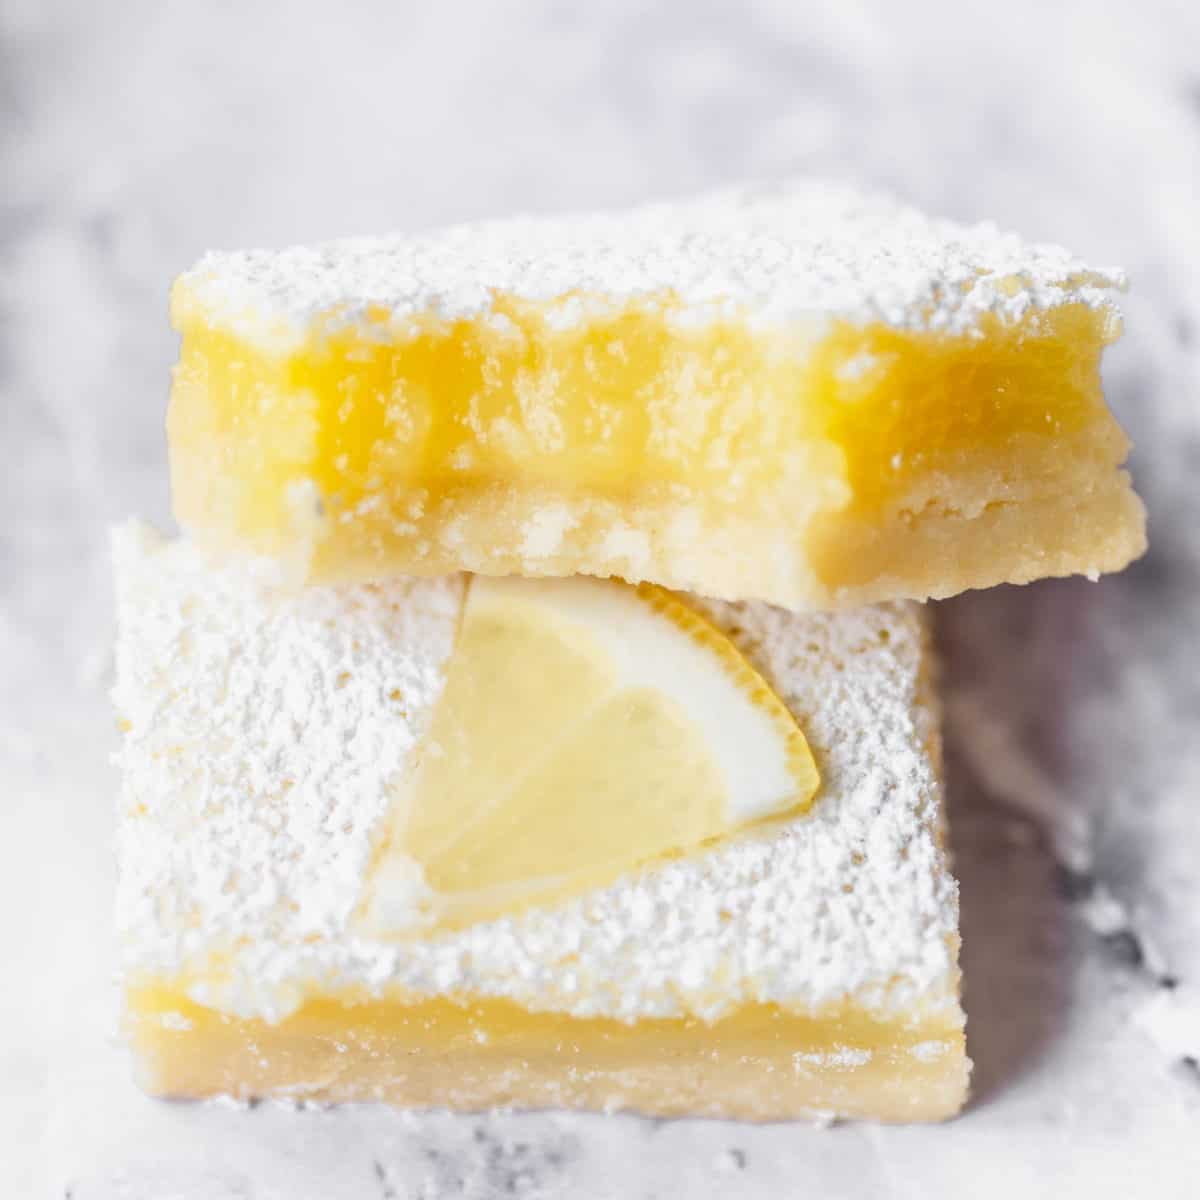 A lemon bar up close with a bite taken out of it.